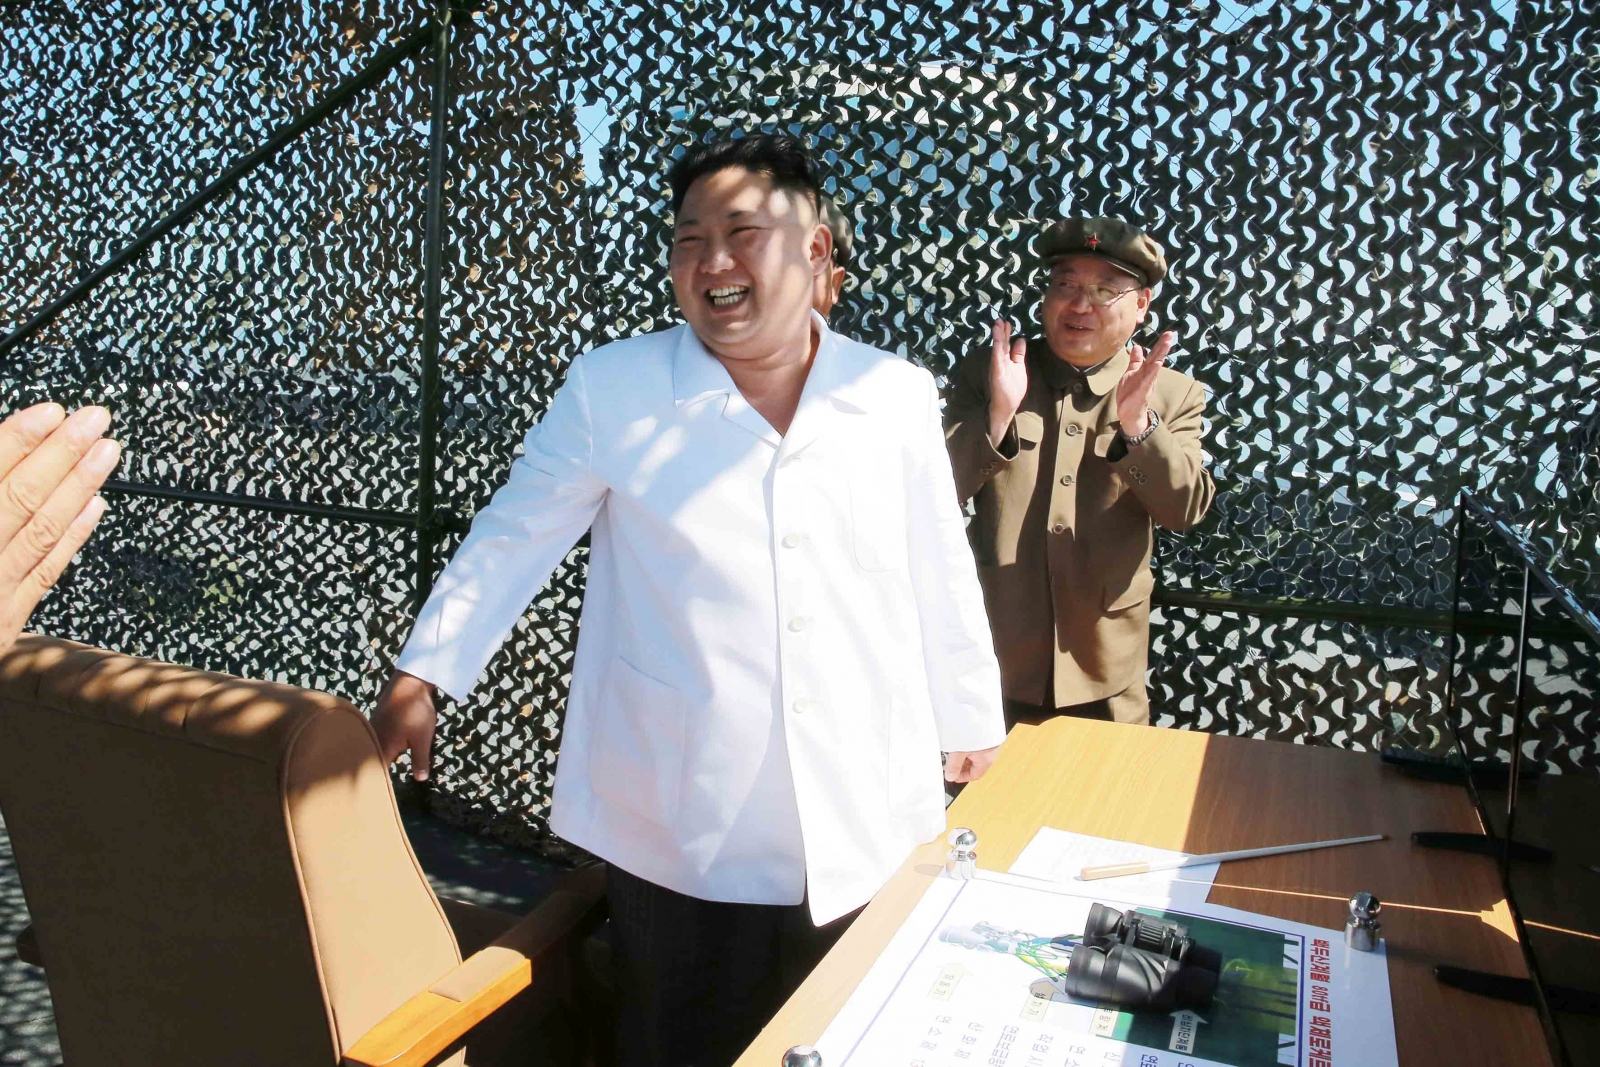 North Korea main space facility upgrades